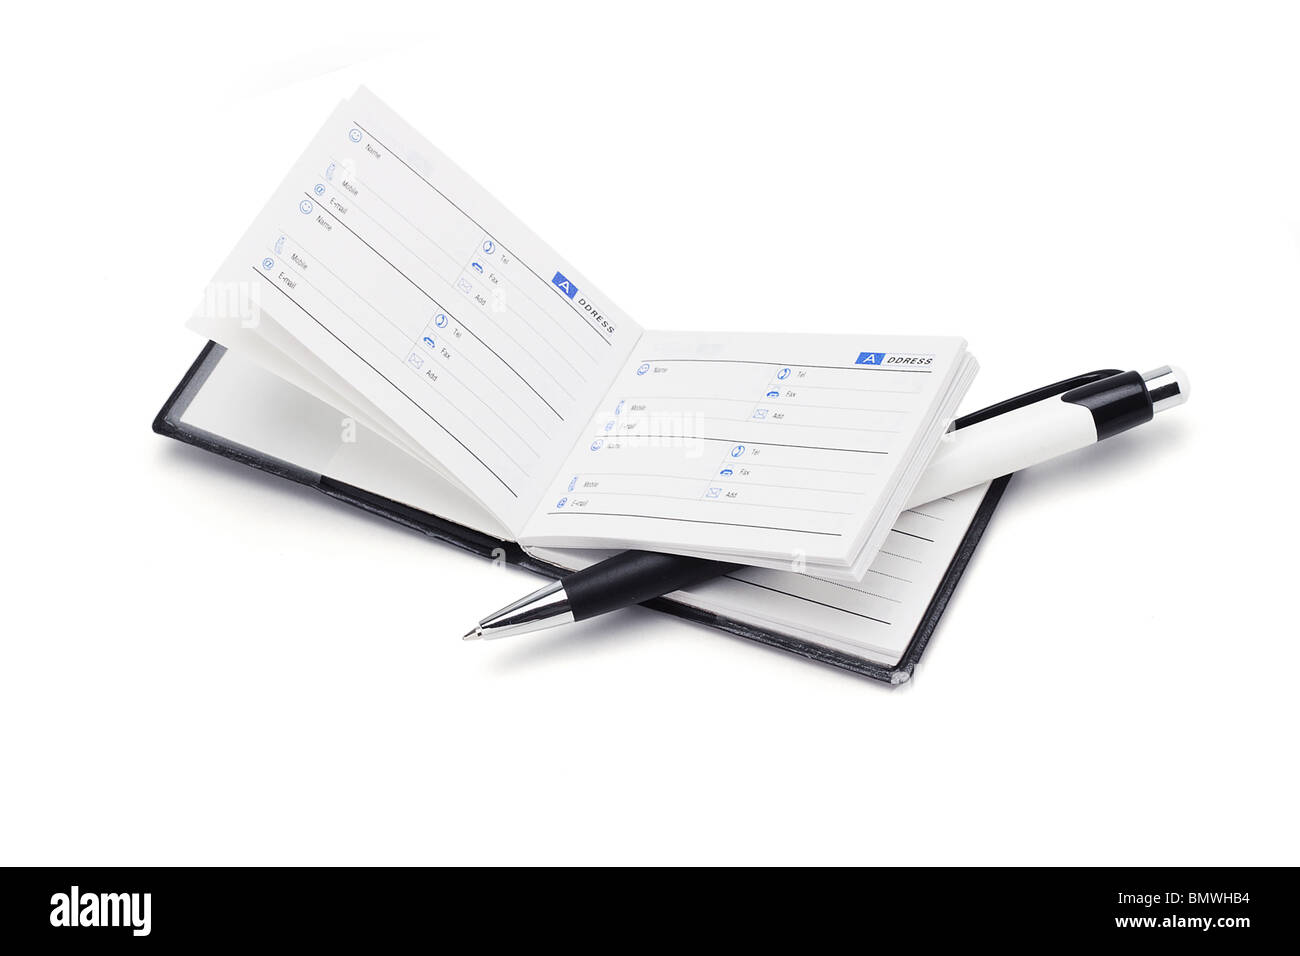 Mini address book and pen on white background - Stock Image